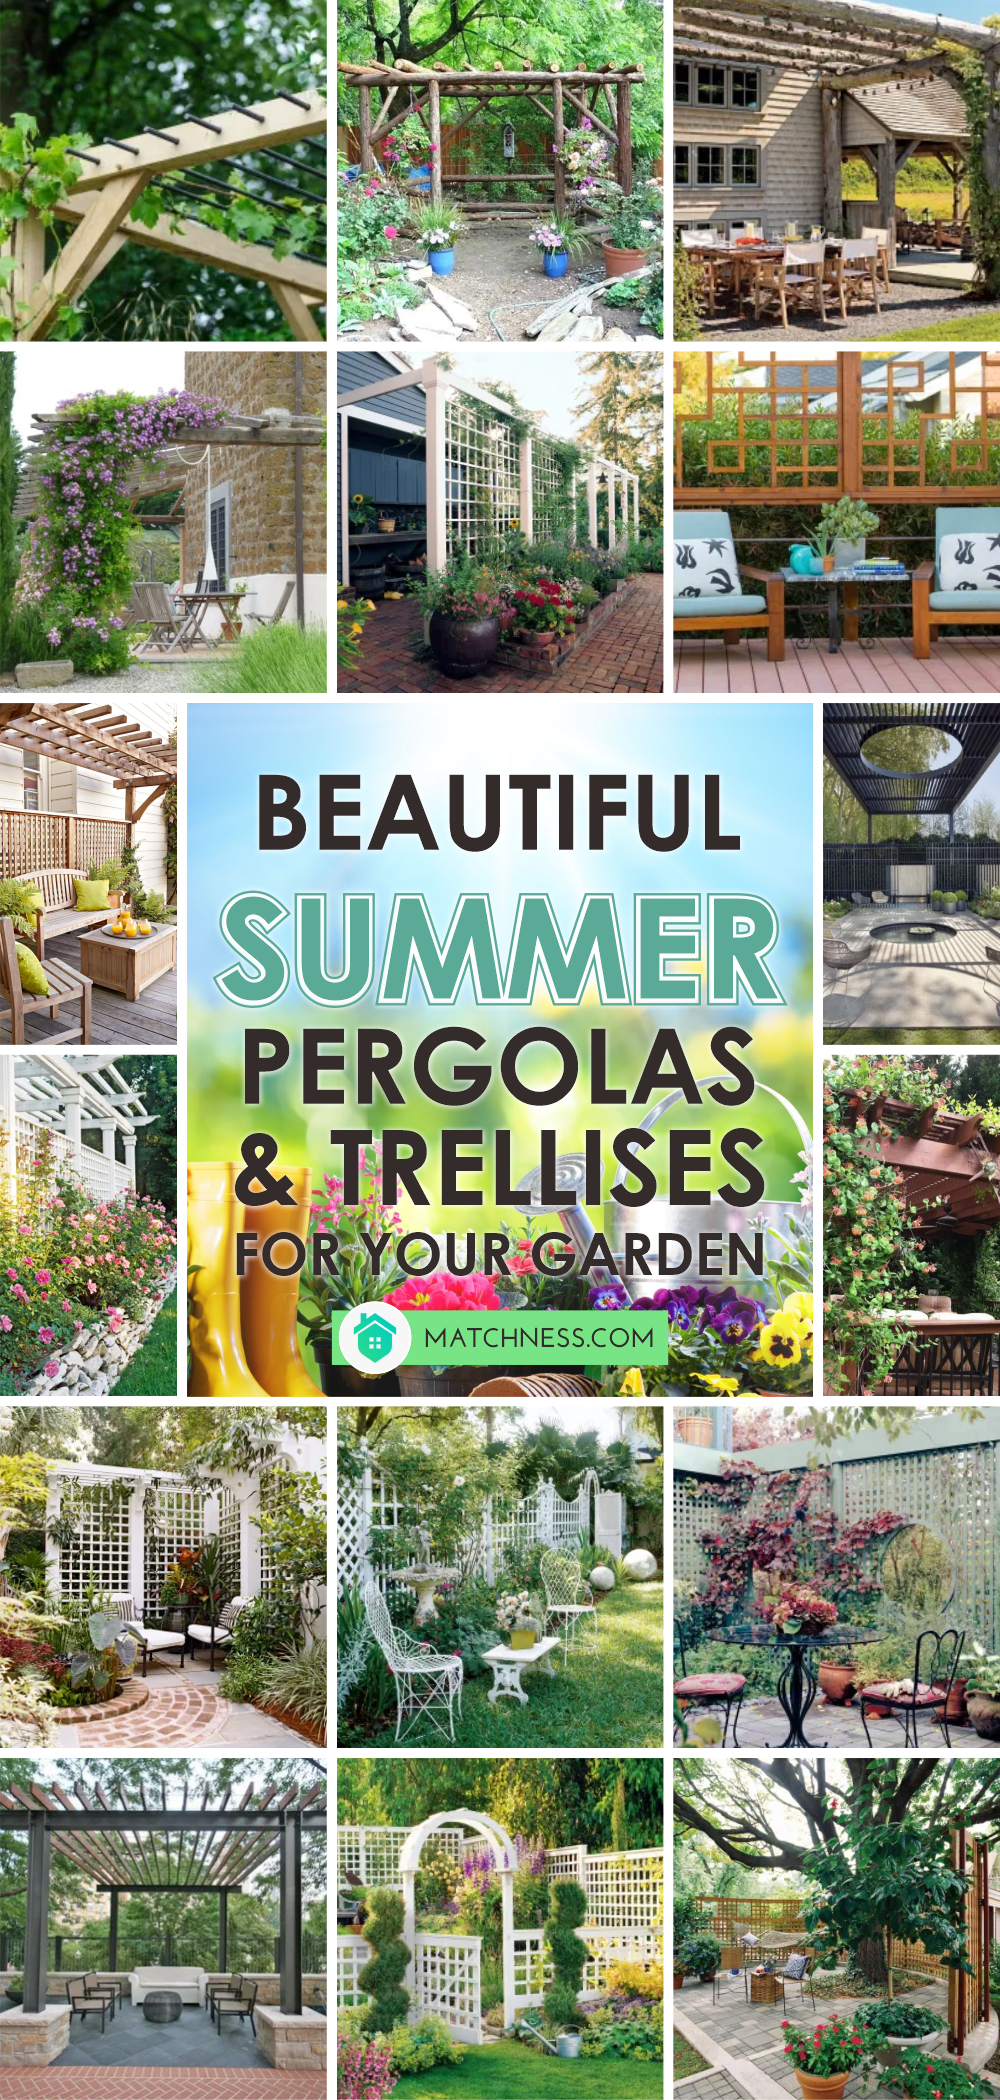 Beautiful summer pergolas and trellises for your garden 1